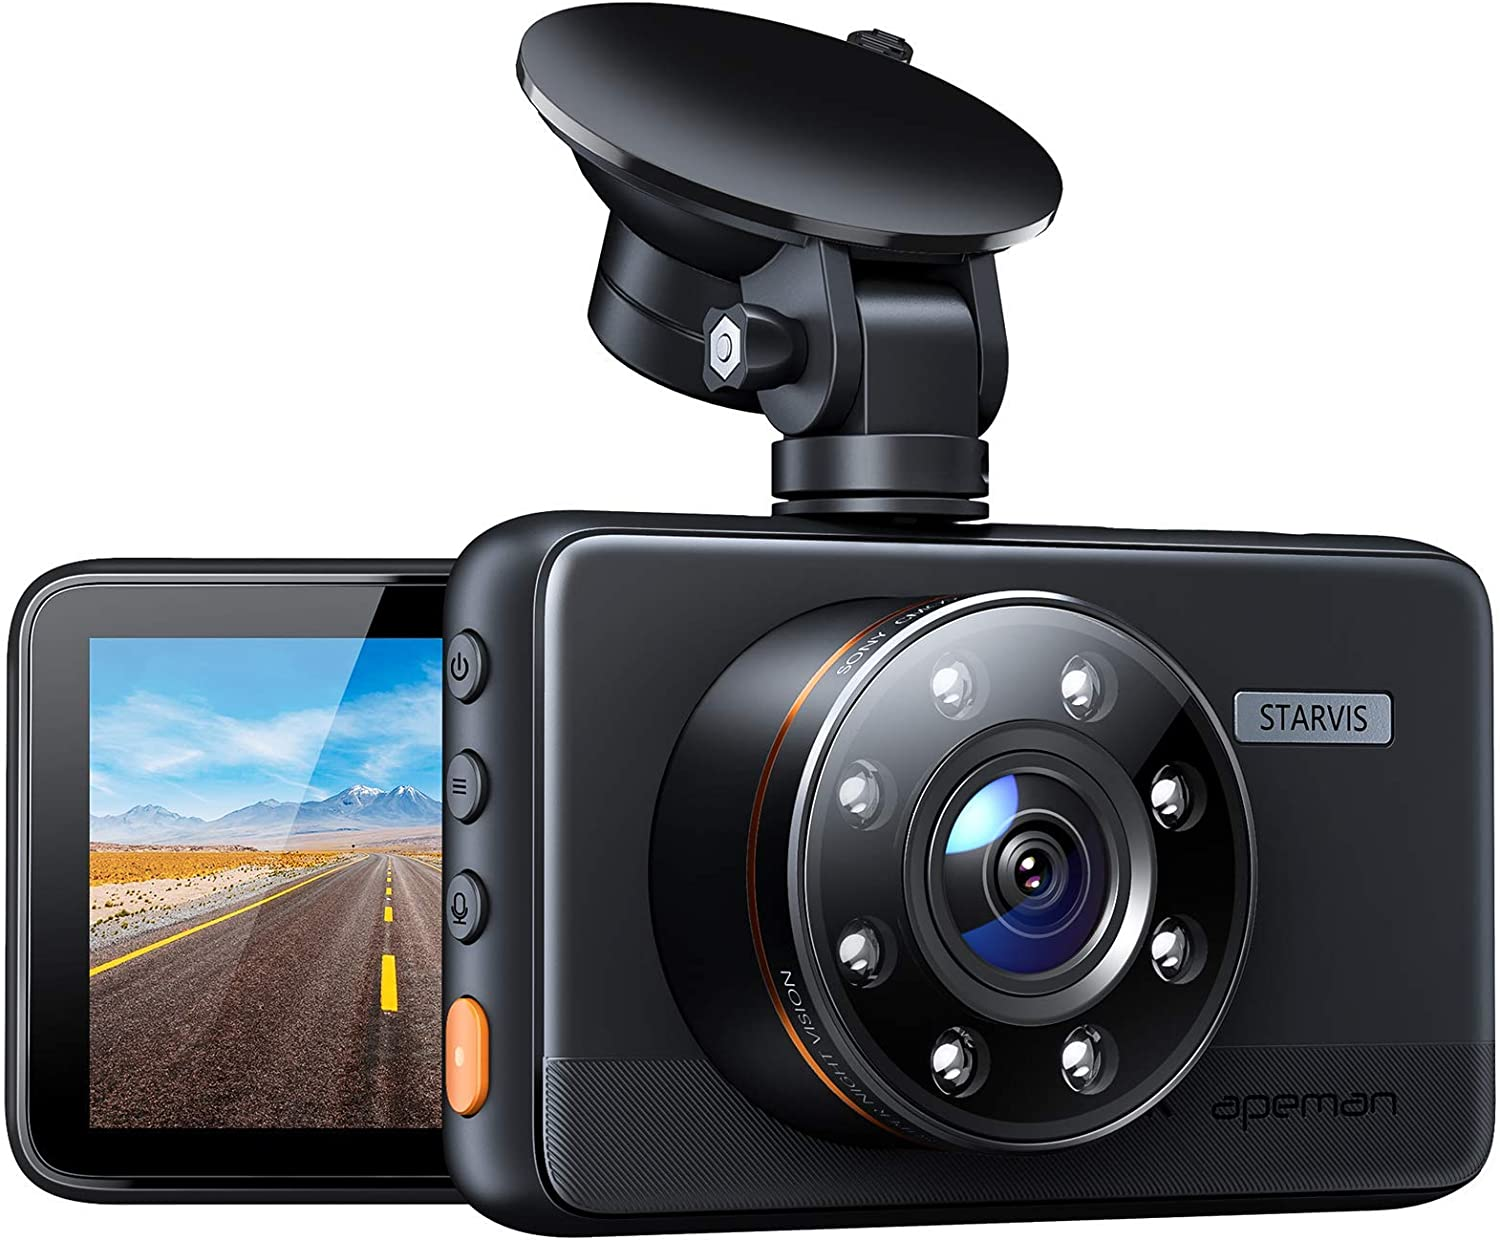 Best Dash Camera for Cars 2021 - Prices, Specs & More